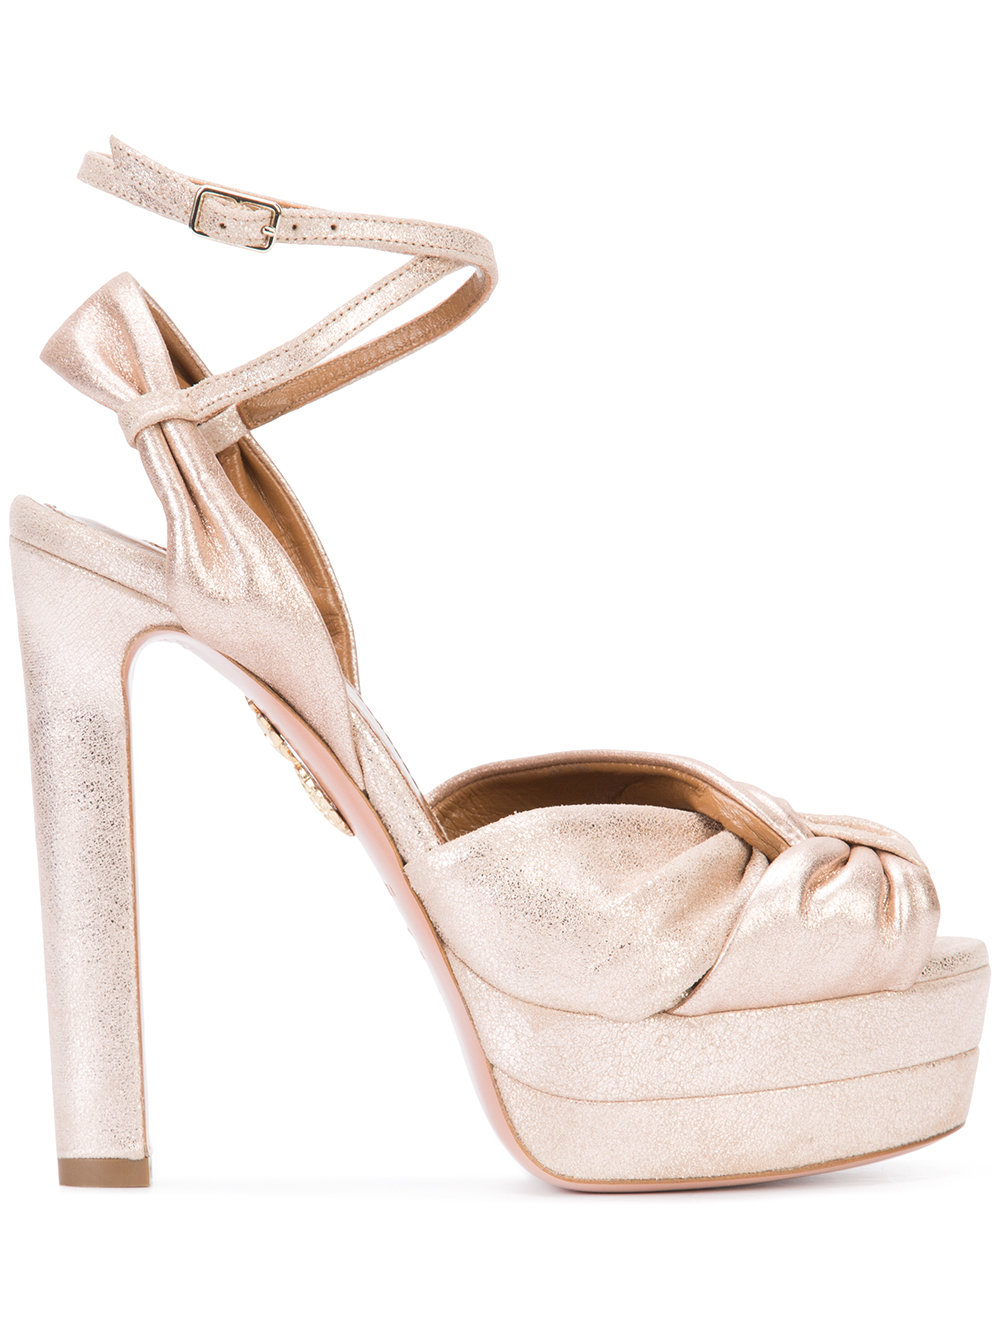 AQUAZZURA sandals - $850